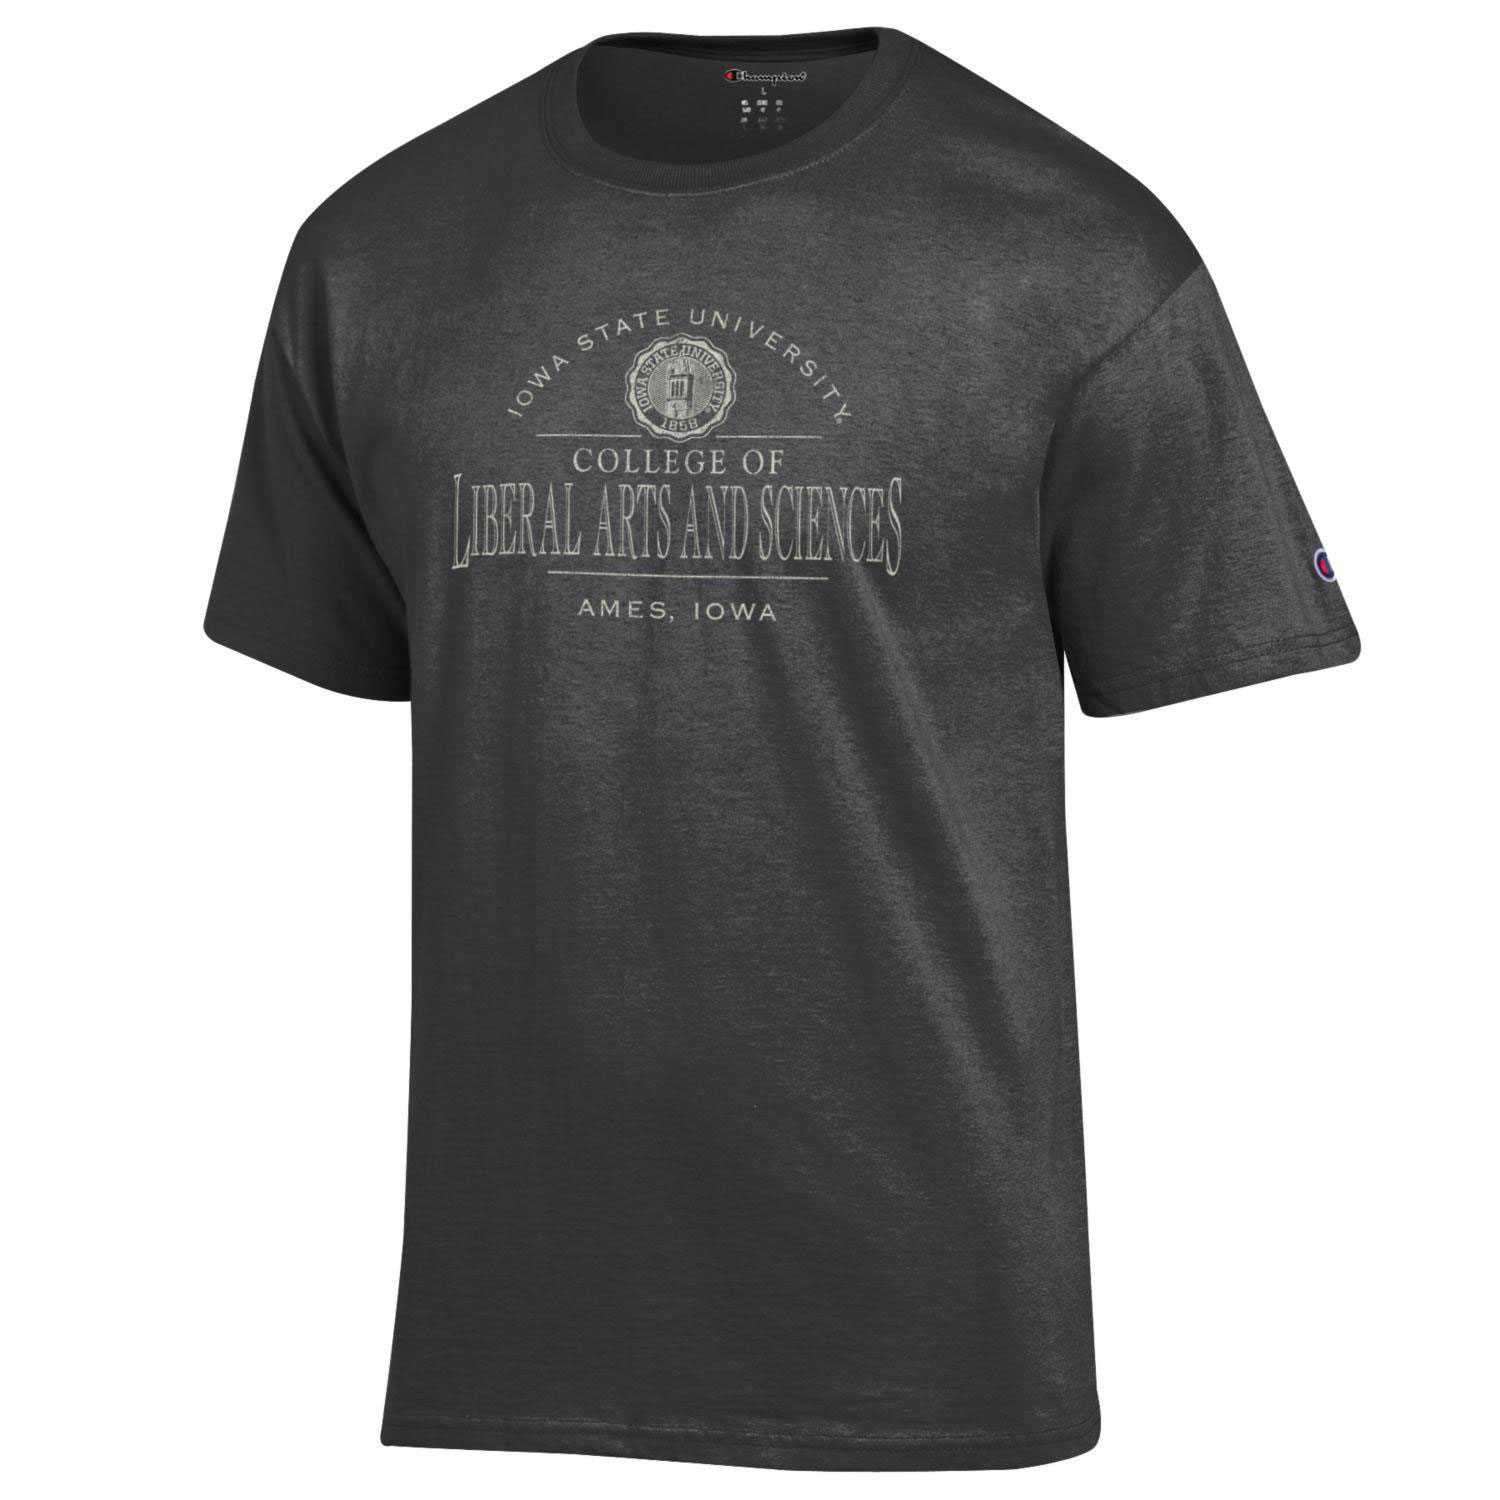 Image For College of Liberal Arts & Sciences T-Shirt* WAS $19.99